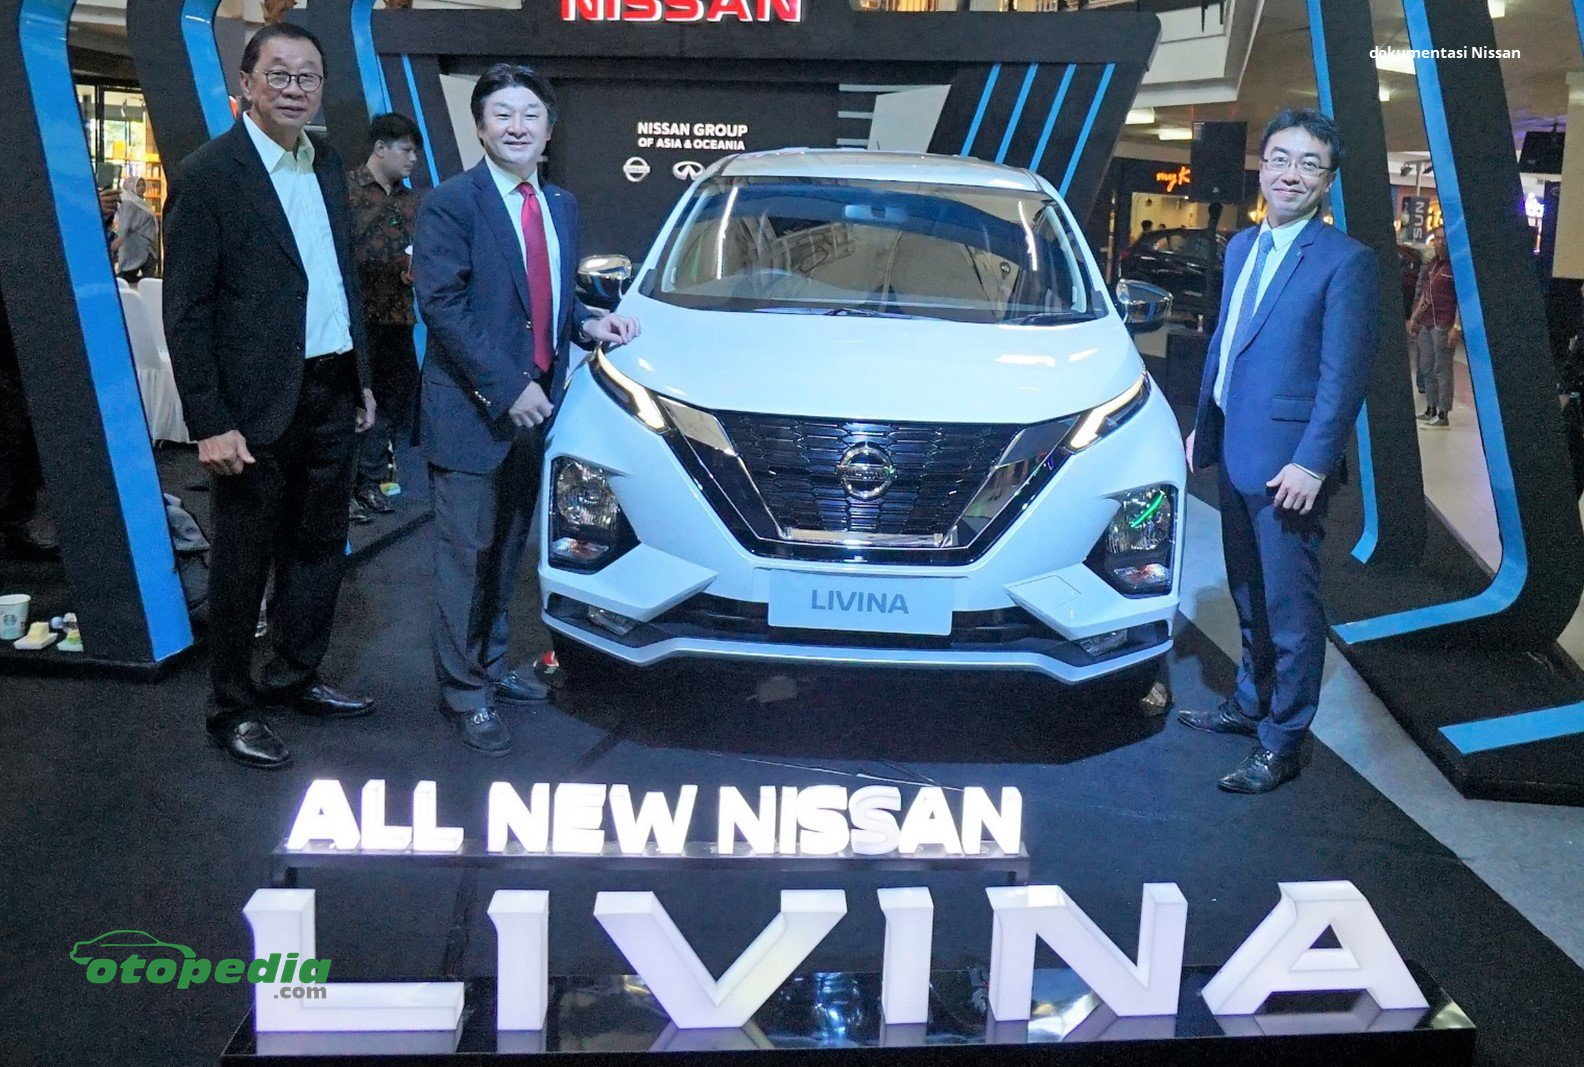 All New Nissan Livina.jpg